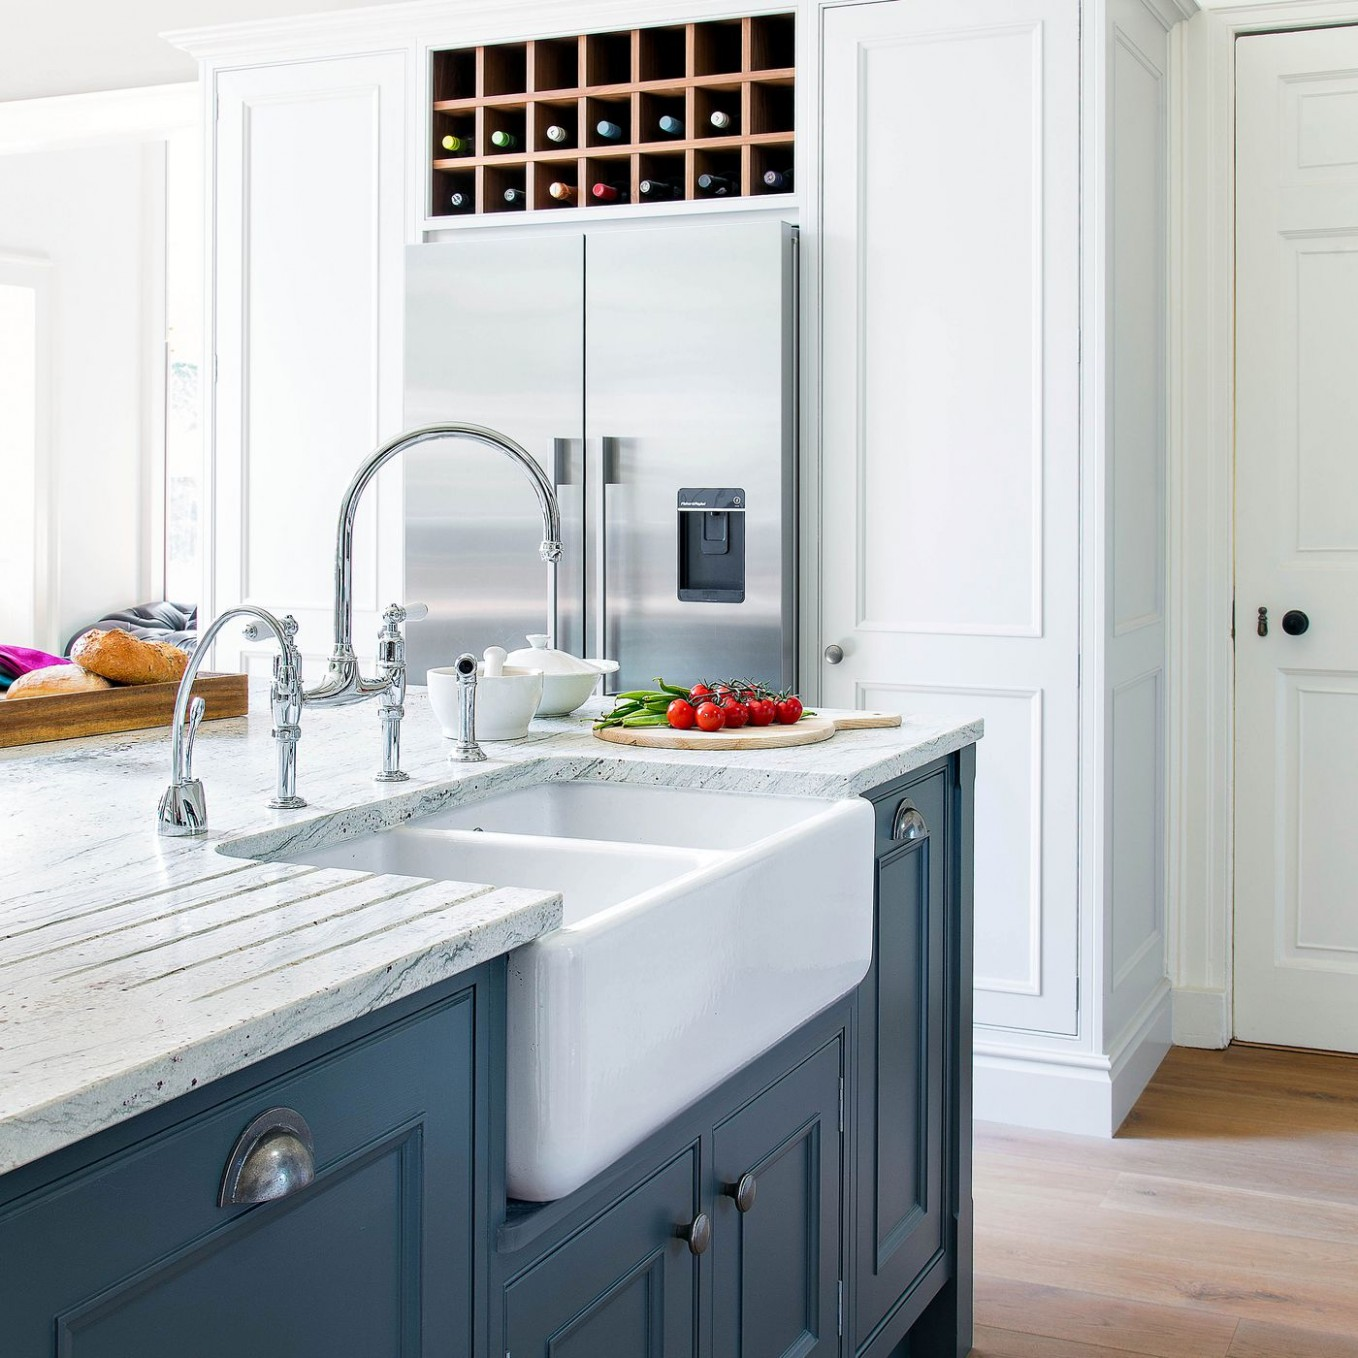 How to Paint Kitchen Cabinets in 8 Steps - This Old House - What Paint Sheen To Use On Kitchen Cabinets